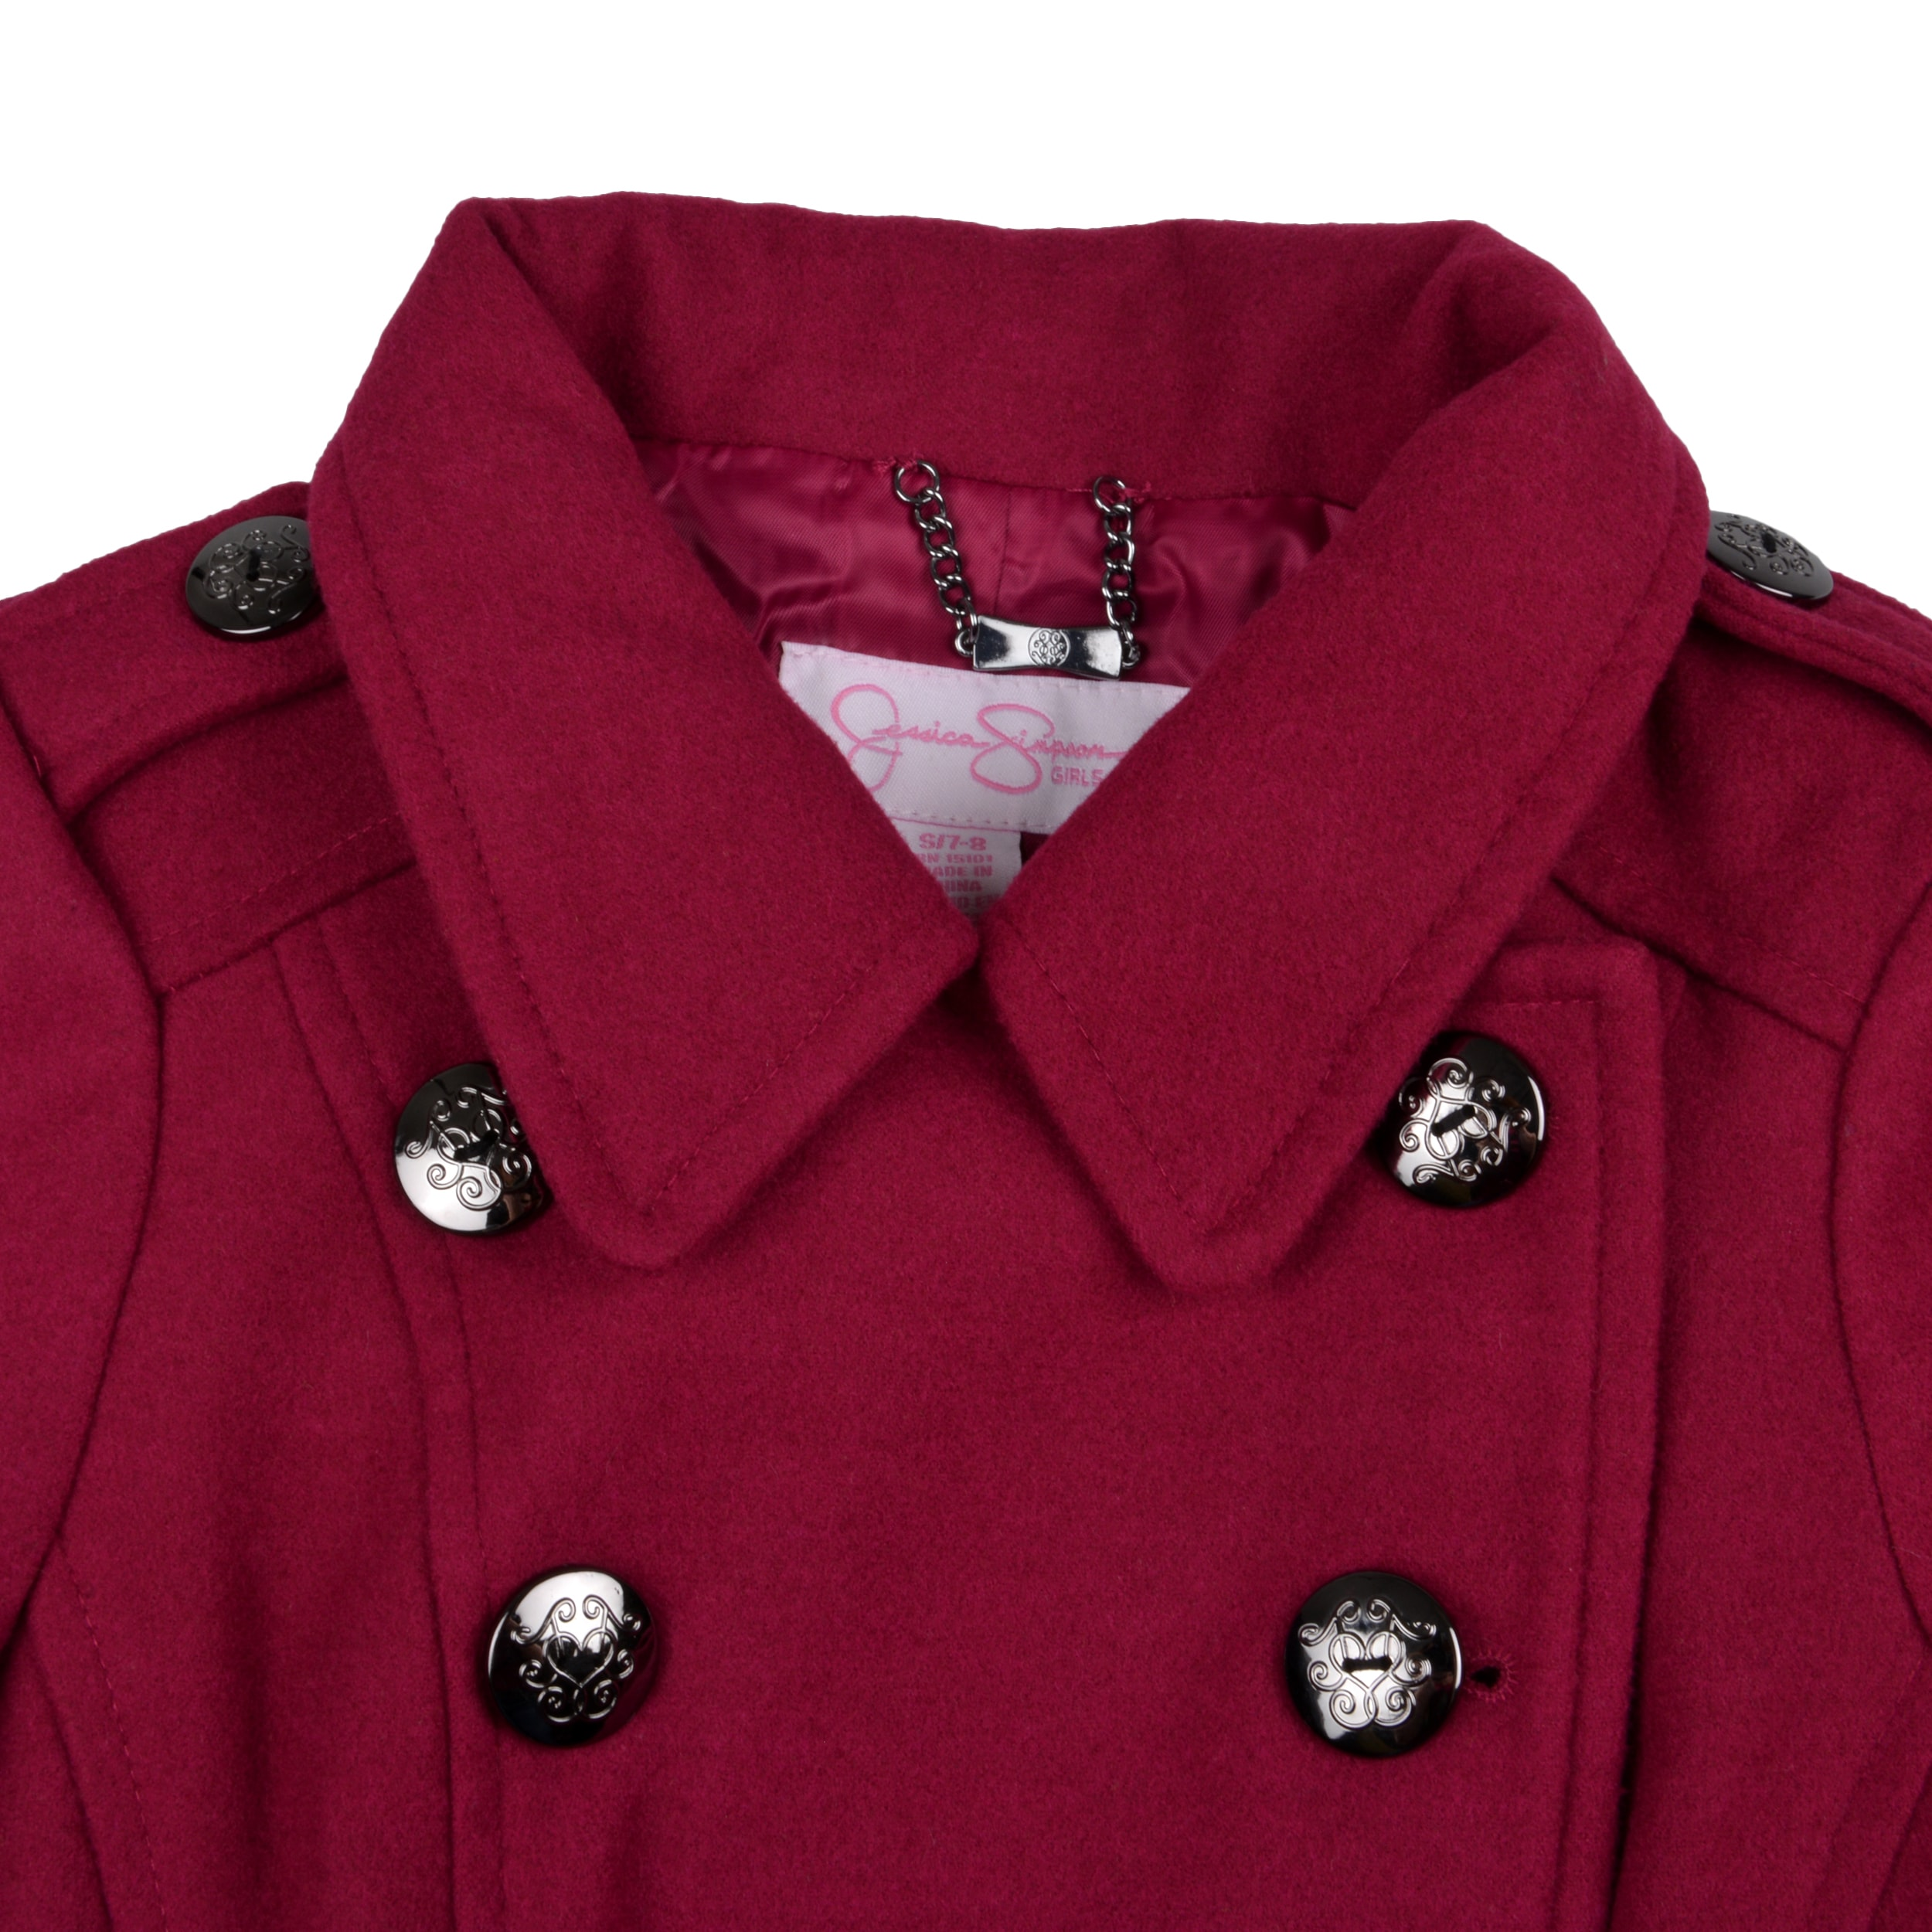 6bcfc06646a6 Shop Jessica Simpson Girl s Double Breasted Peplum Peacoat - Free ...